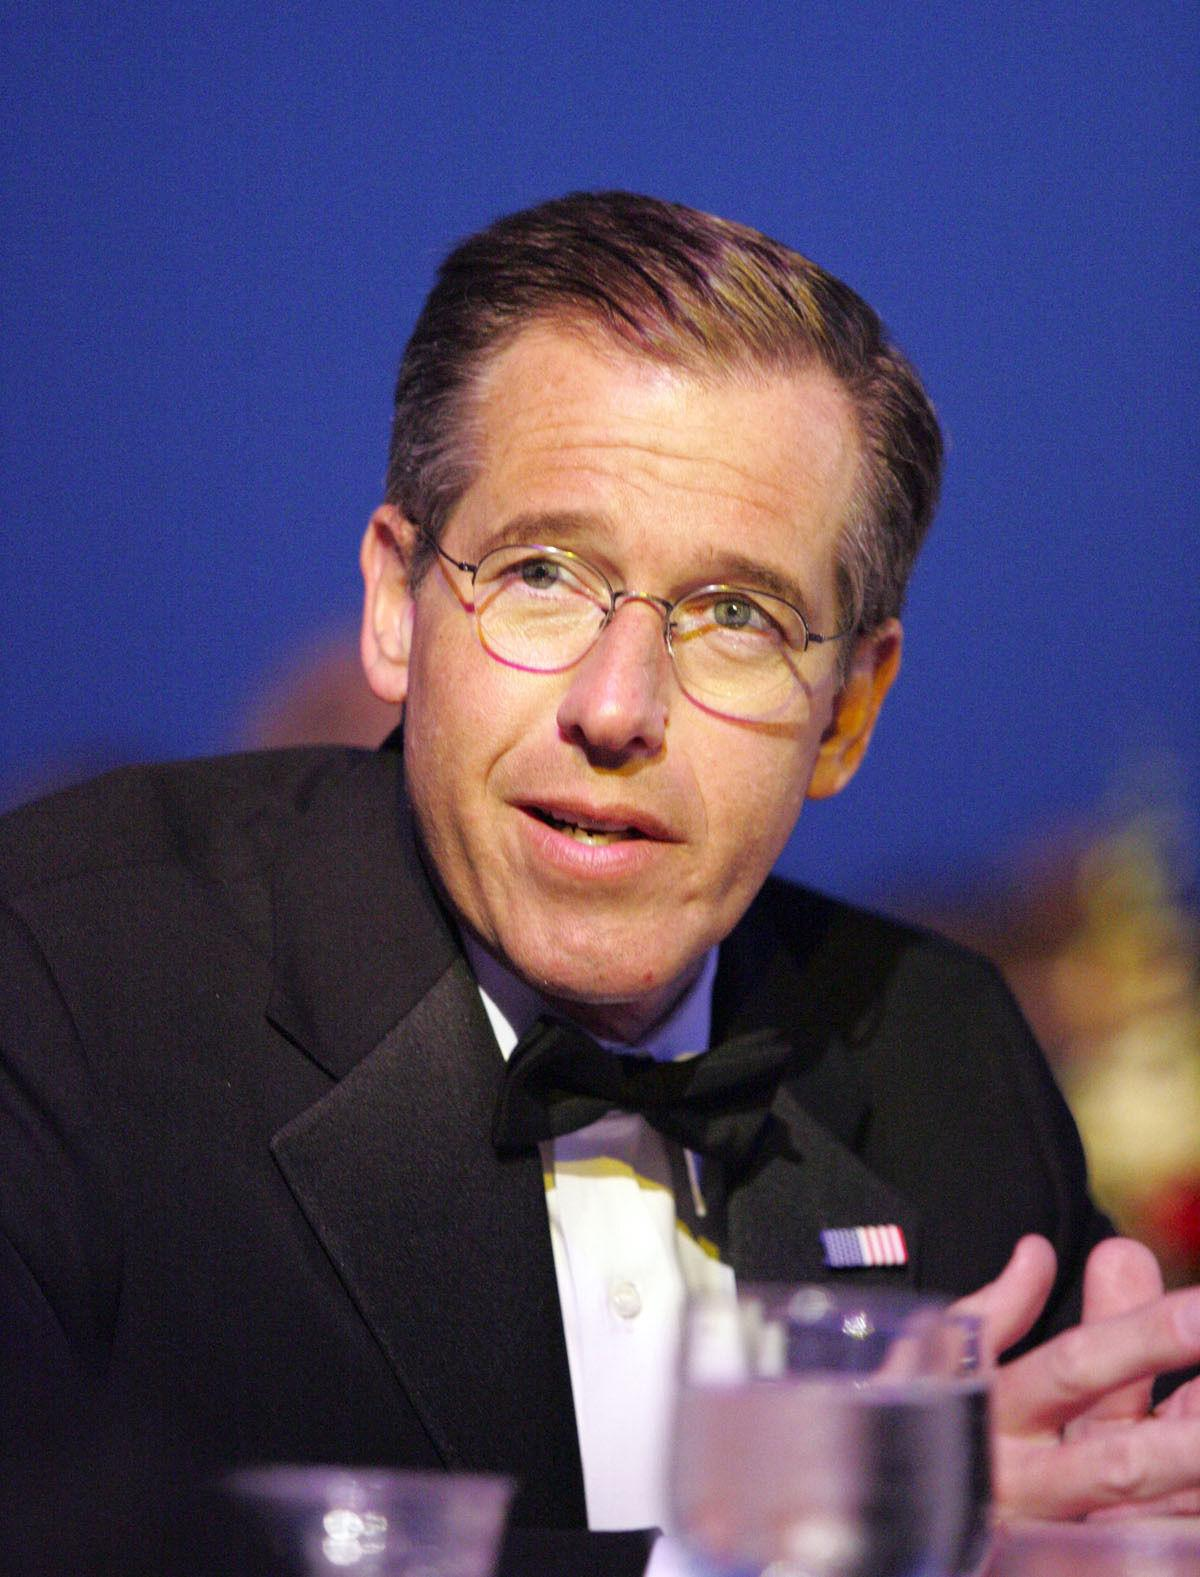 Brian Williams resigns from Medal of Honor foundation